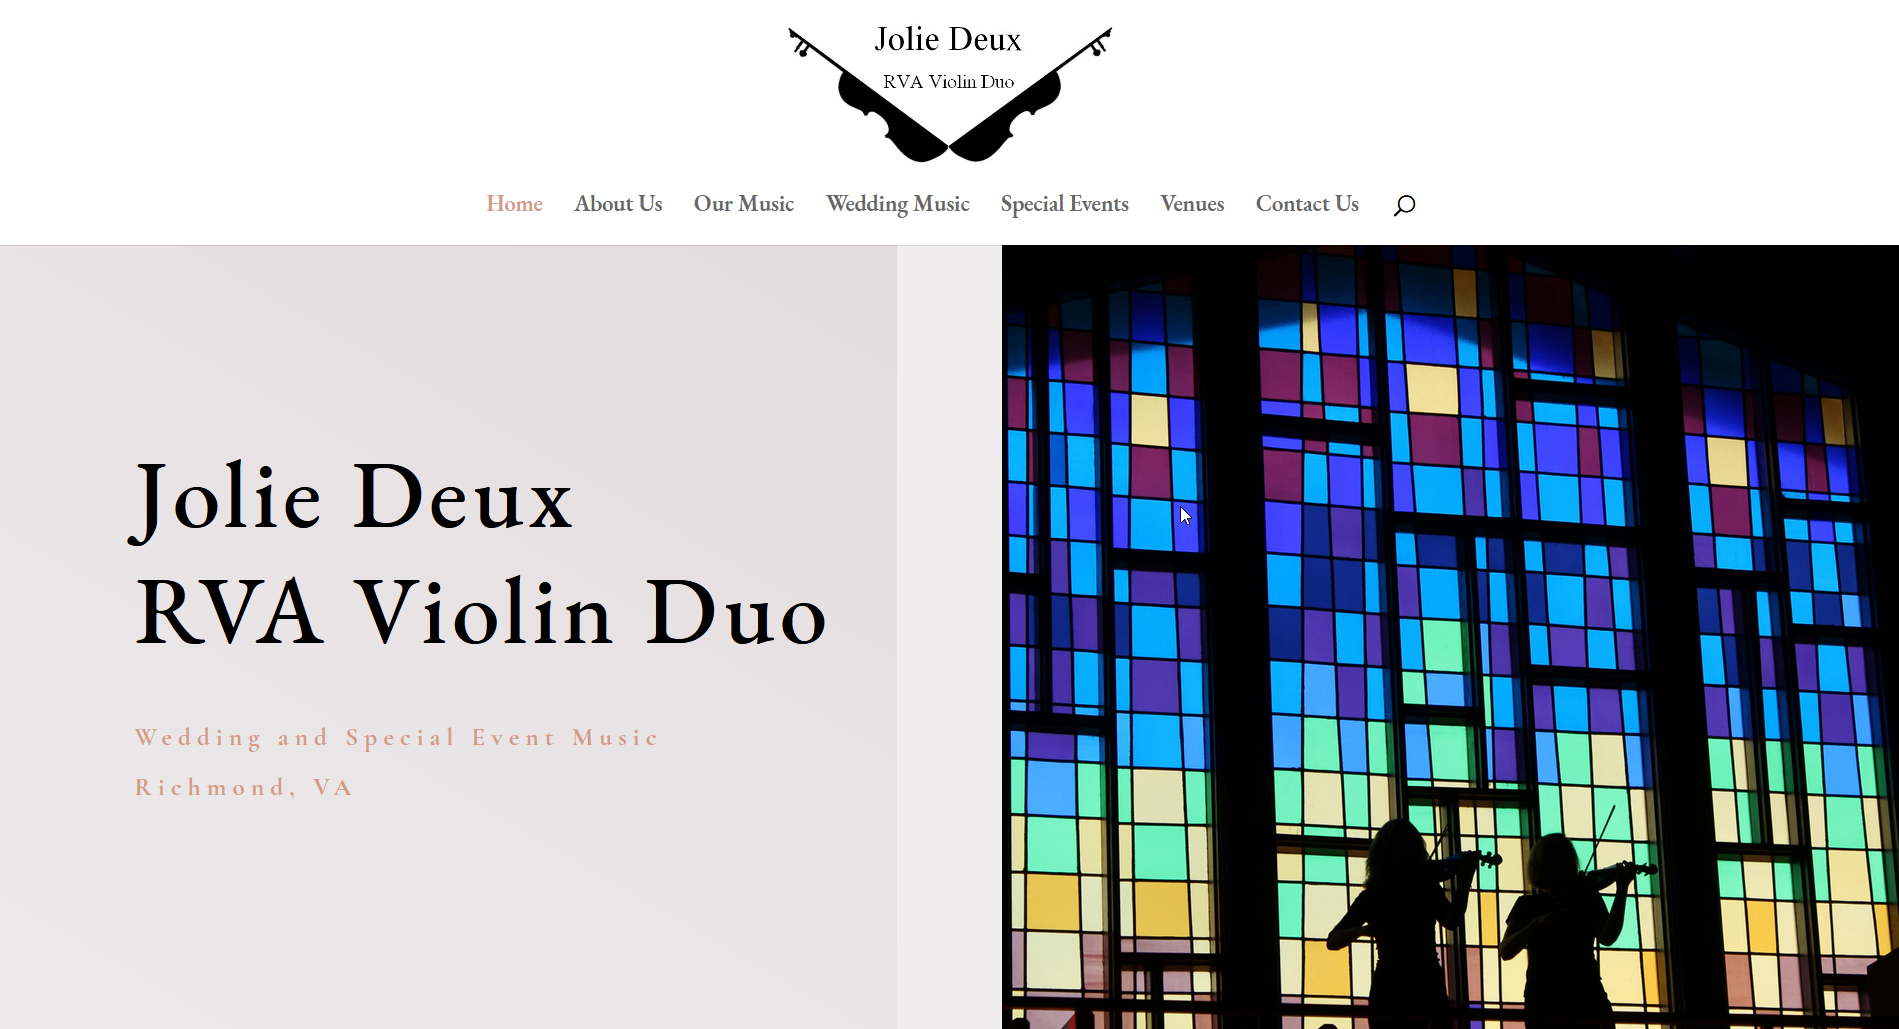 Jolie Deux Violin Studio Website Screenshot